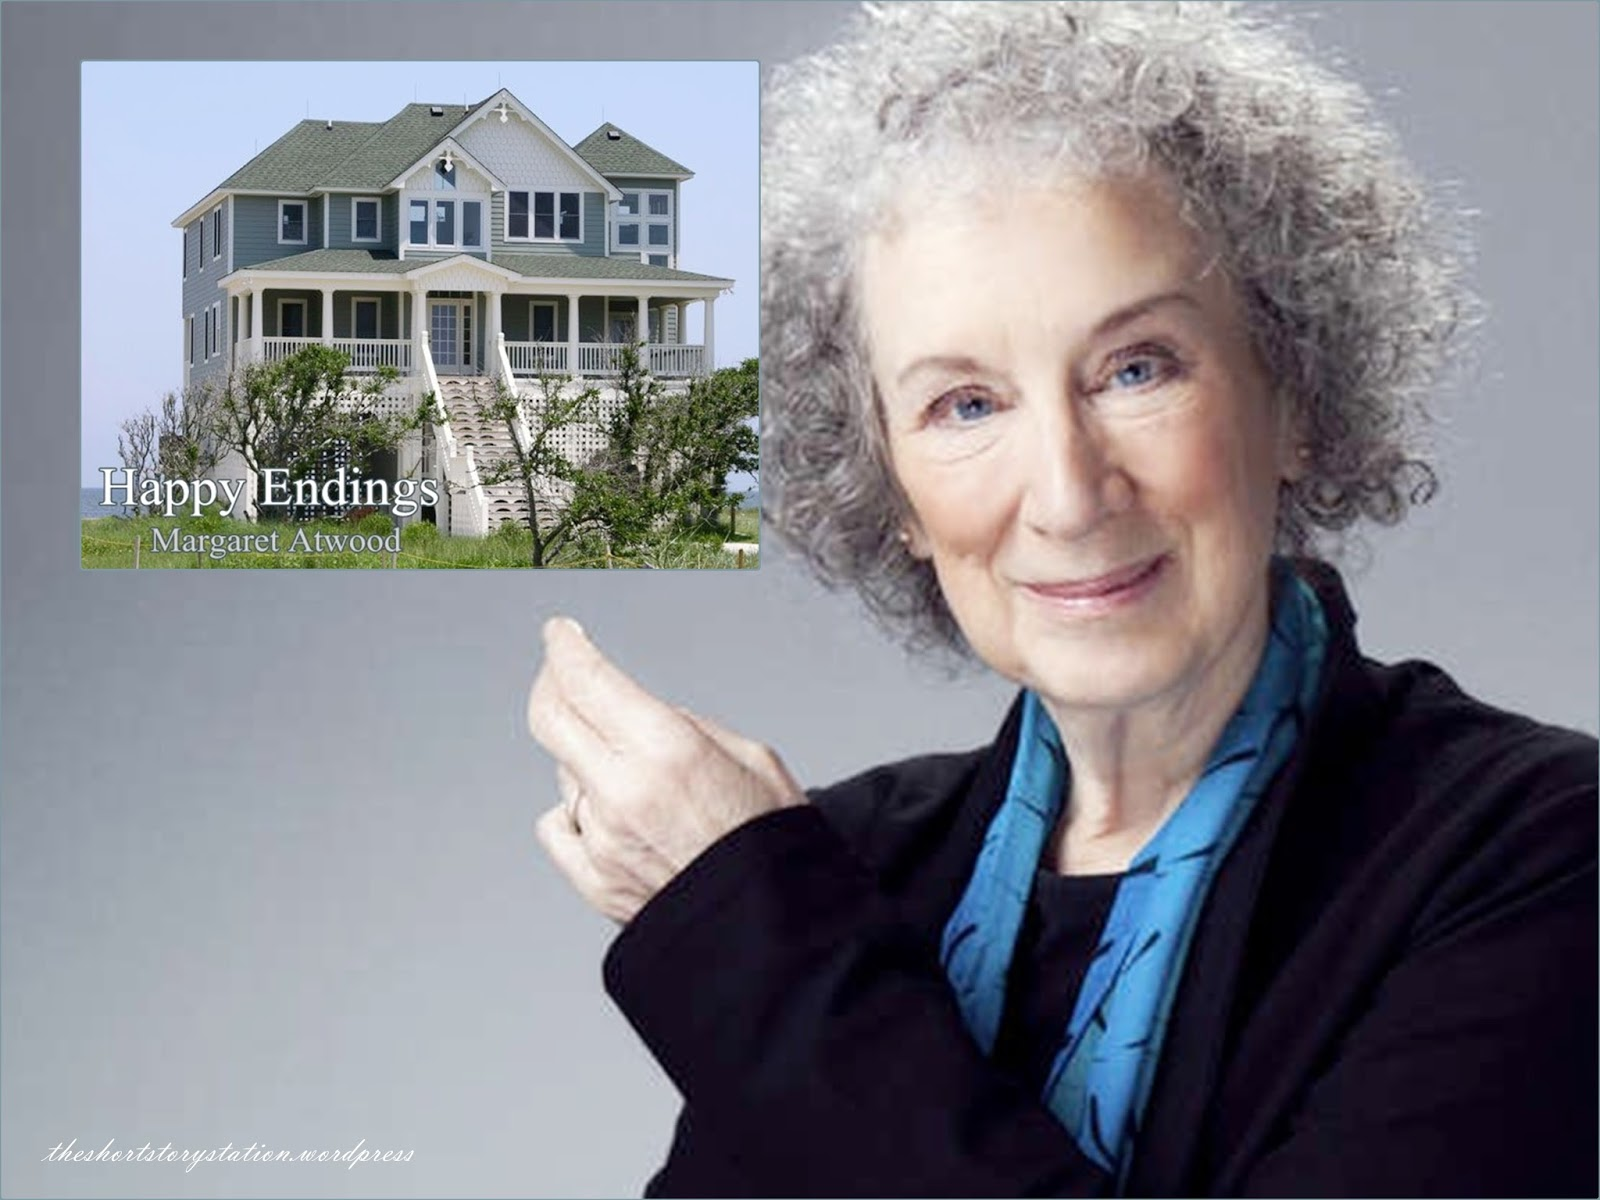 Margaret atwood writing and subjectivity meaning